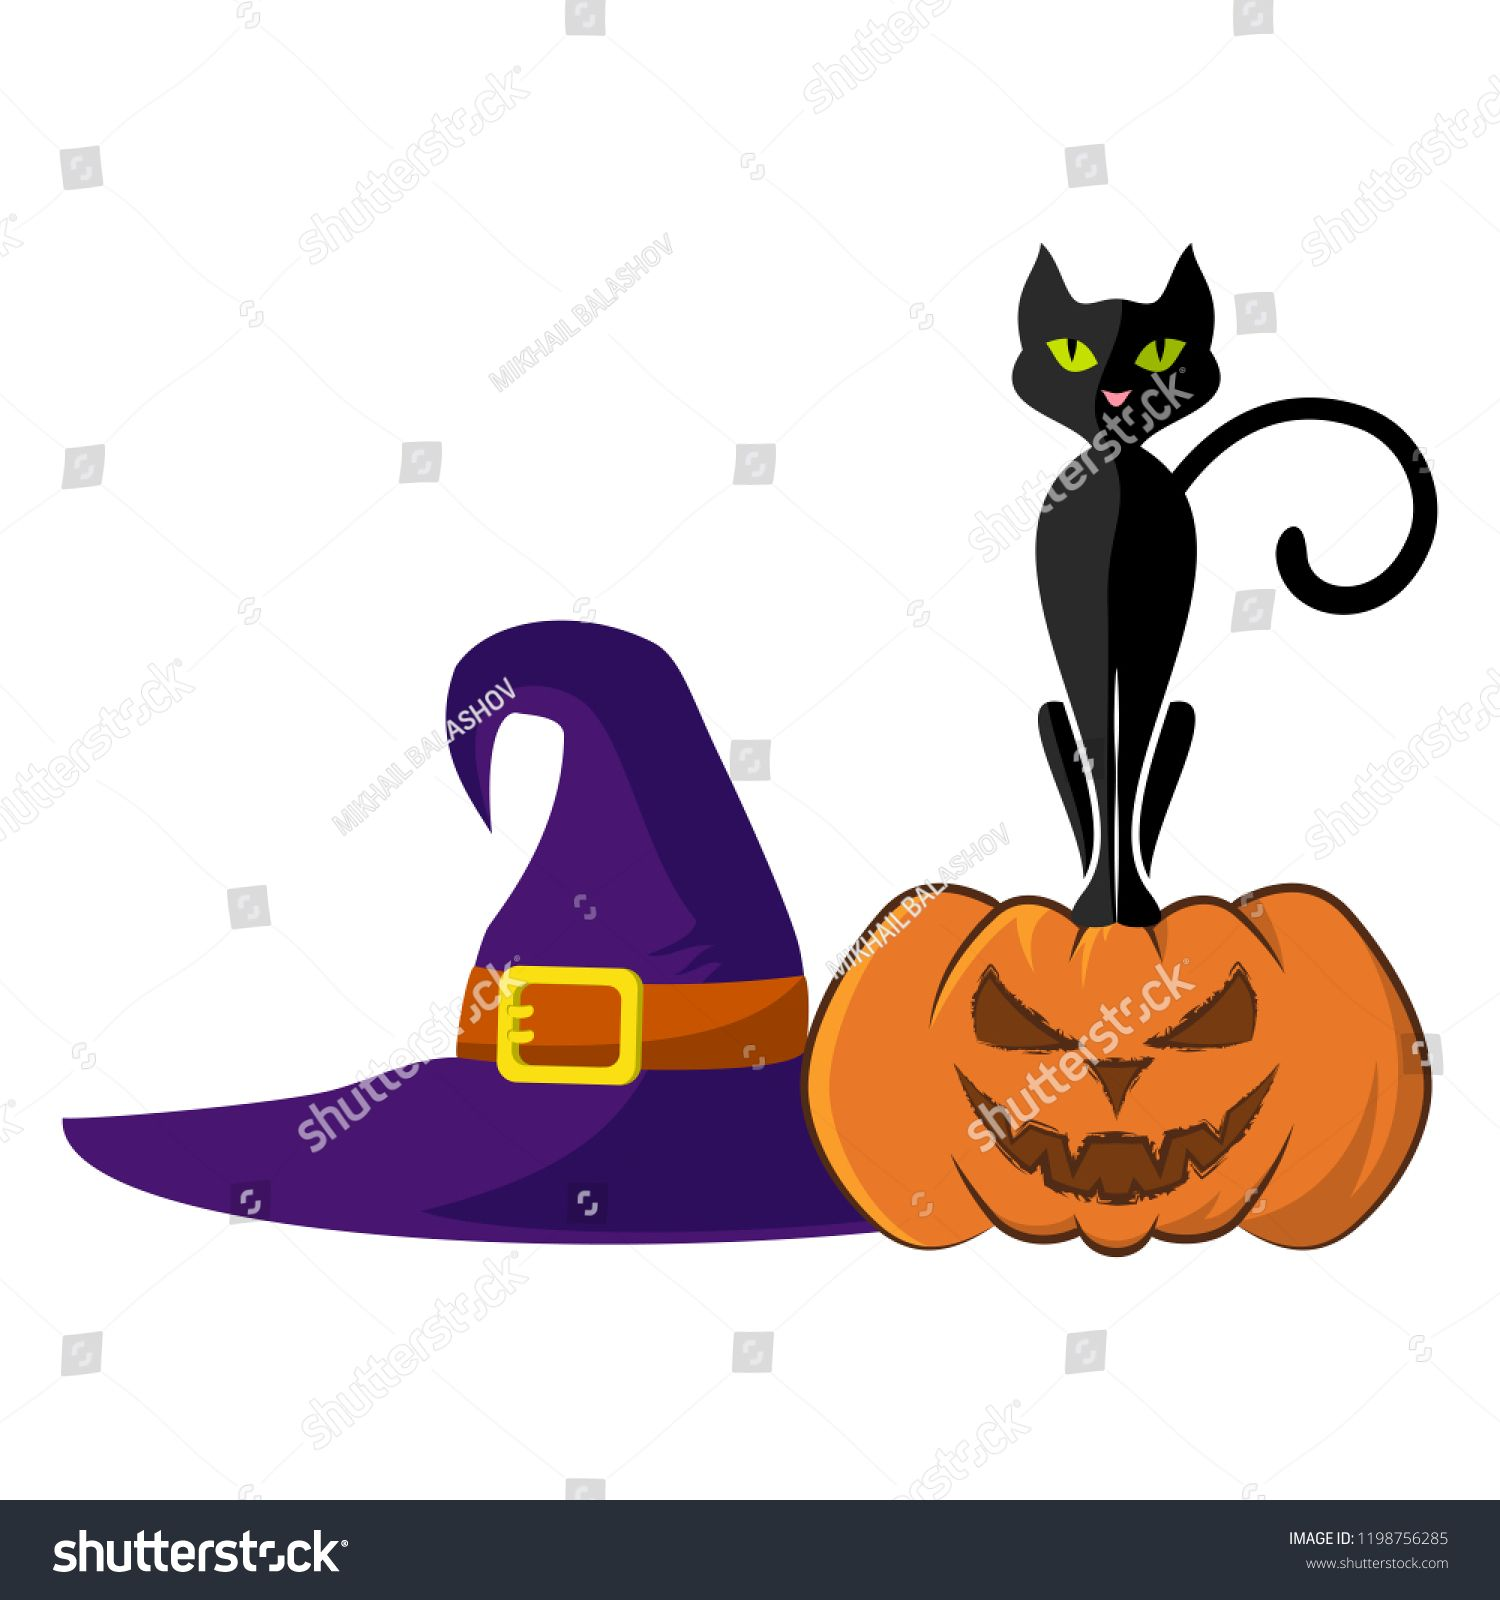 Vector image of ominous pumpkin, black cat and witch hat